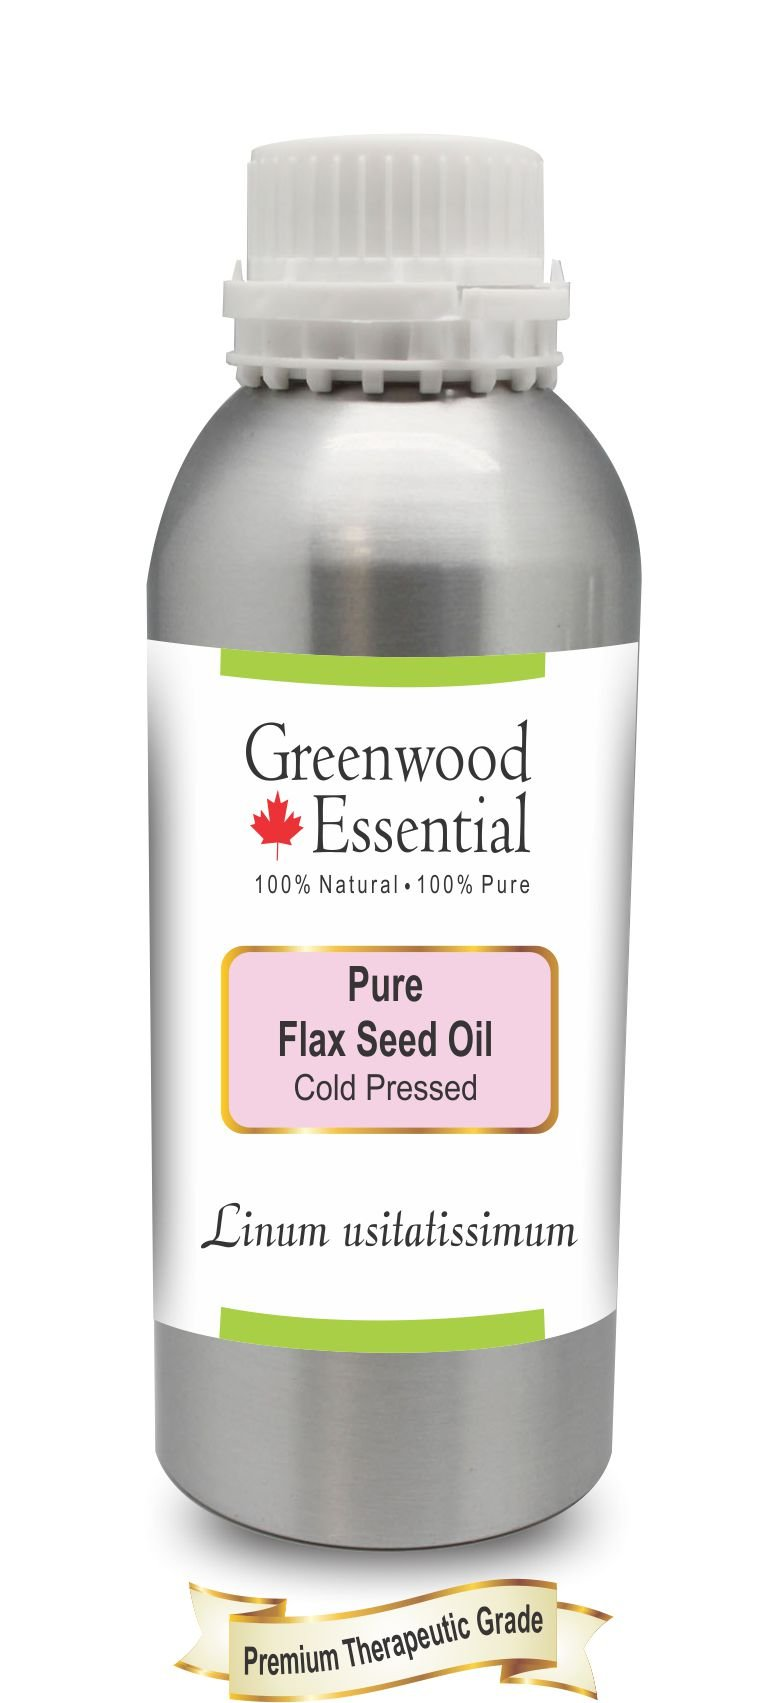 Greenwood Essential Pure Flax Seed Oil (Linum usitatissimum) 100% Natural Therapeutic Grade Cold Pressed 630ml (21.3 oz) by Greenwood Essential